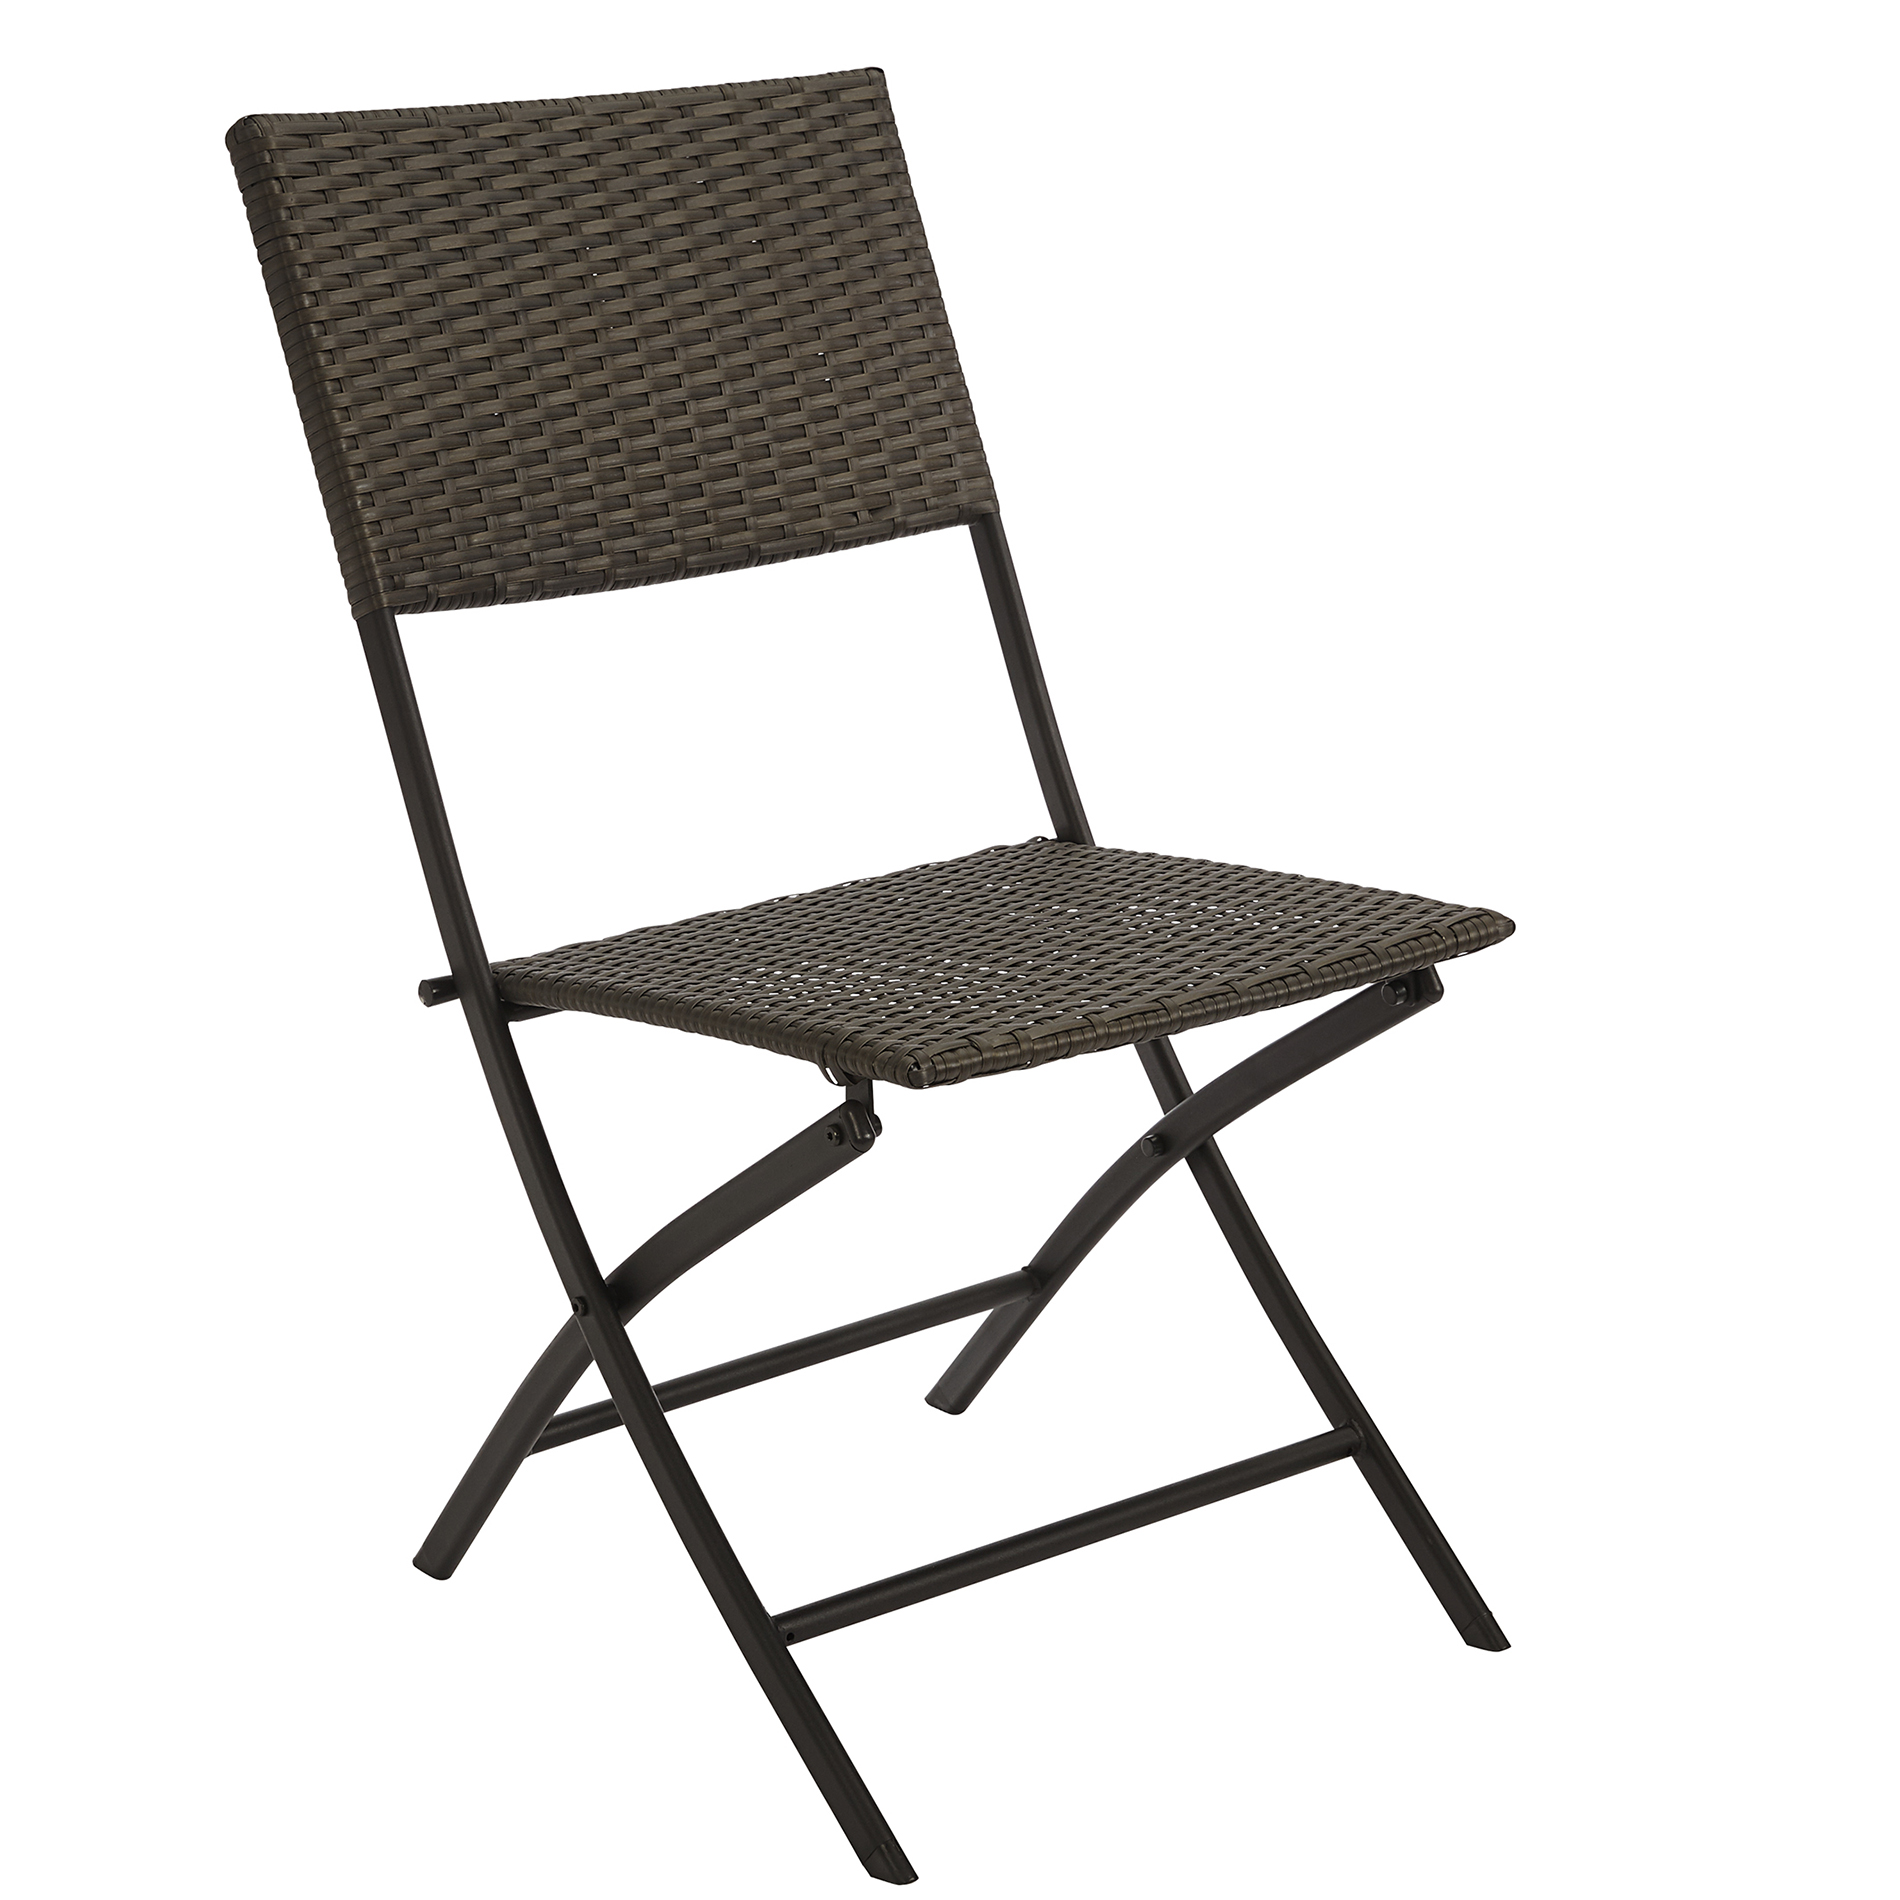 Plastic Folding Lawn Chairs Jaclyn Smith Resin Wicker Folding Chair Armless Chair